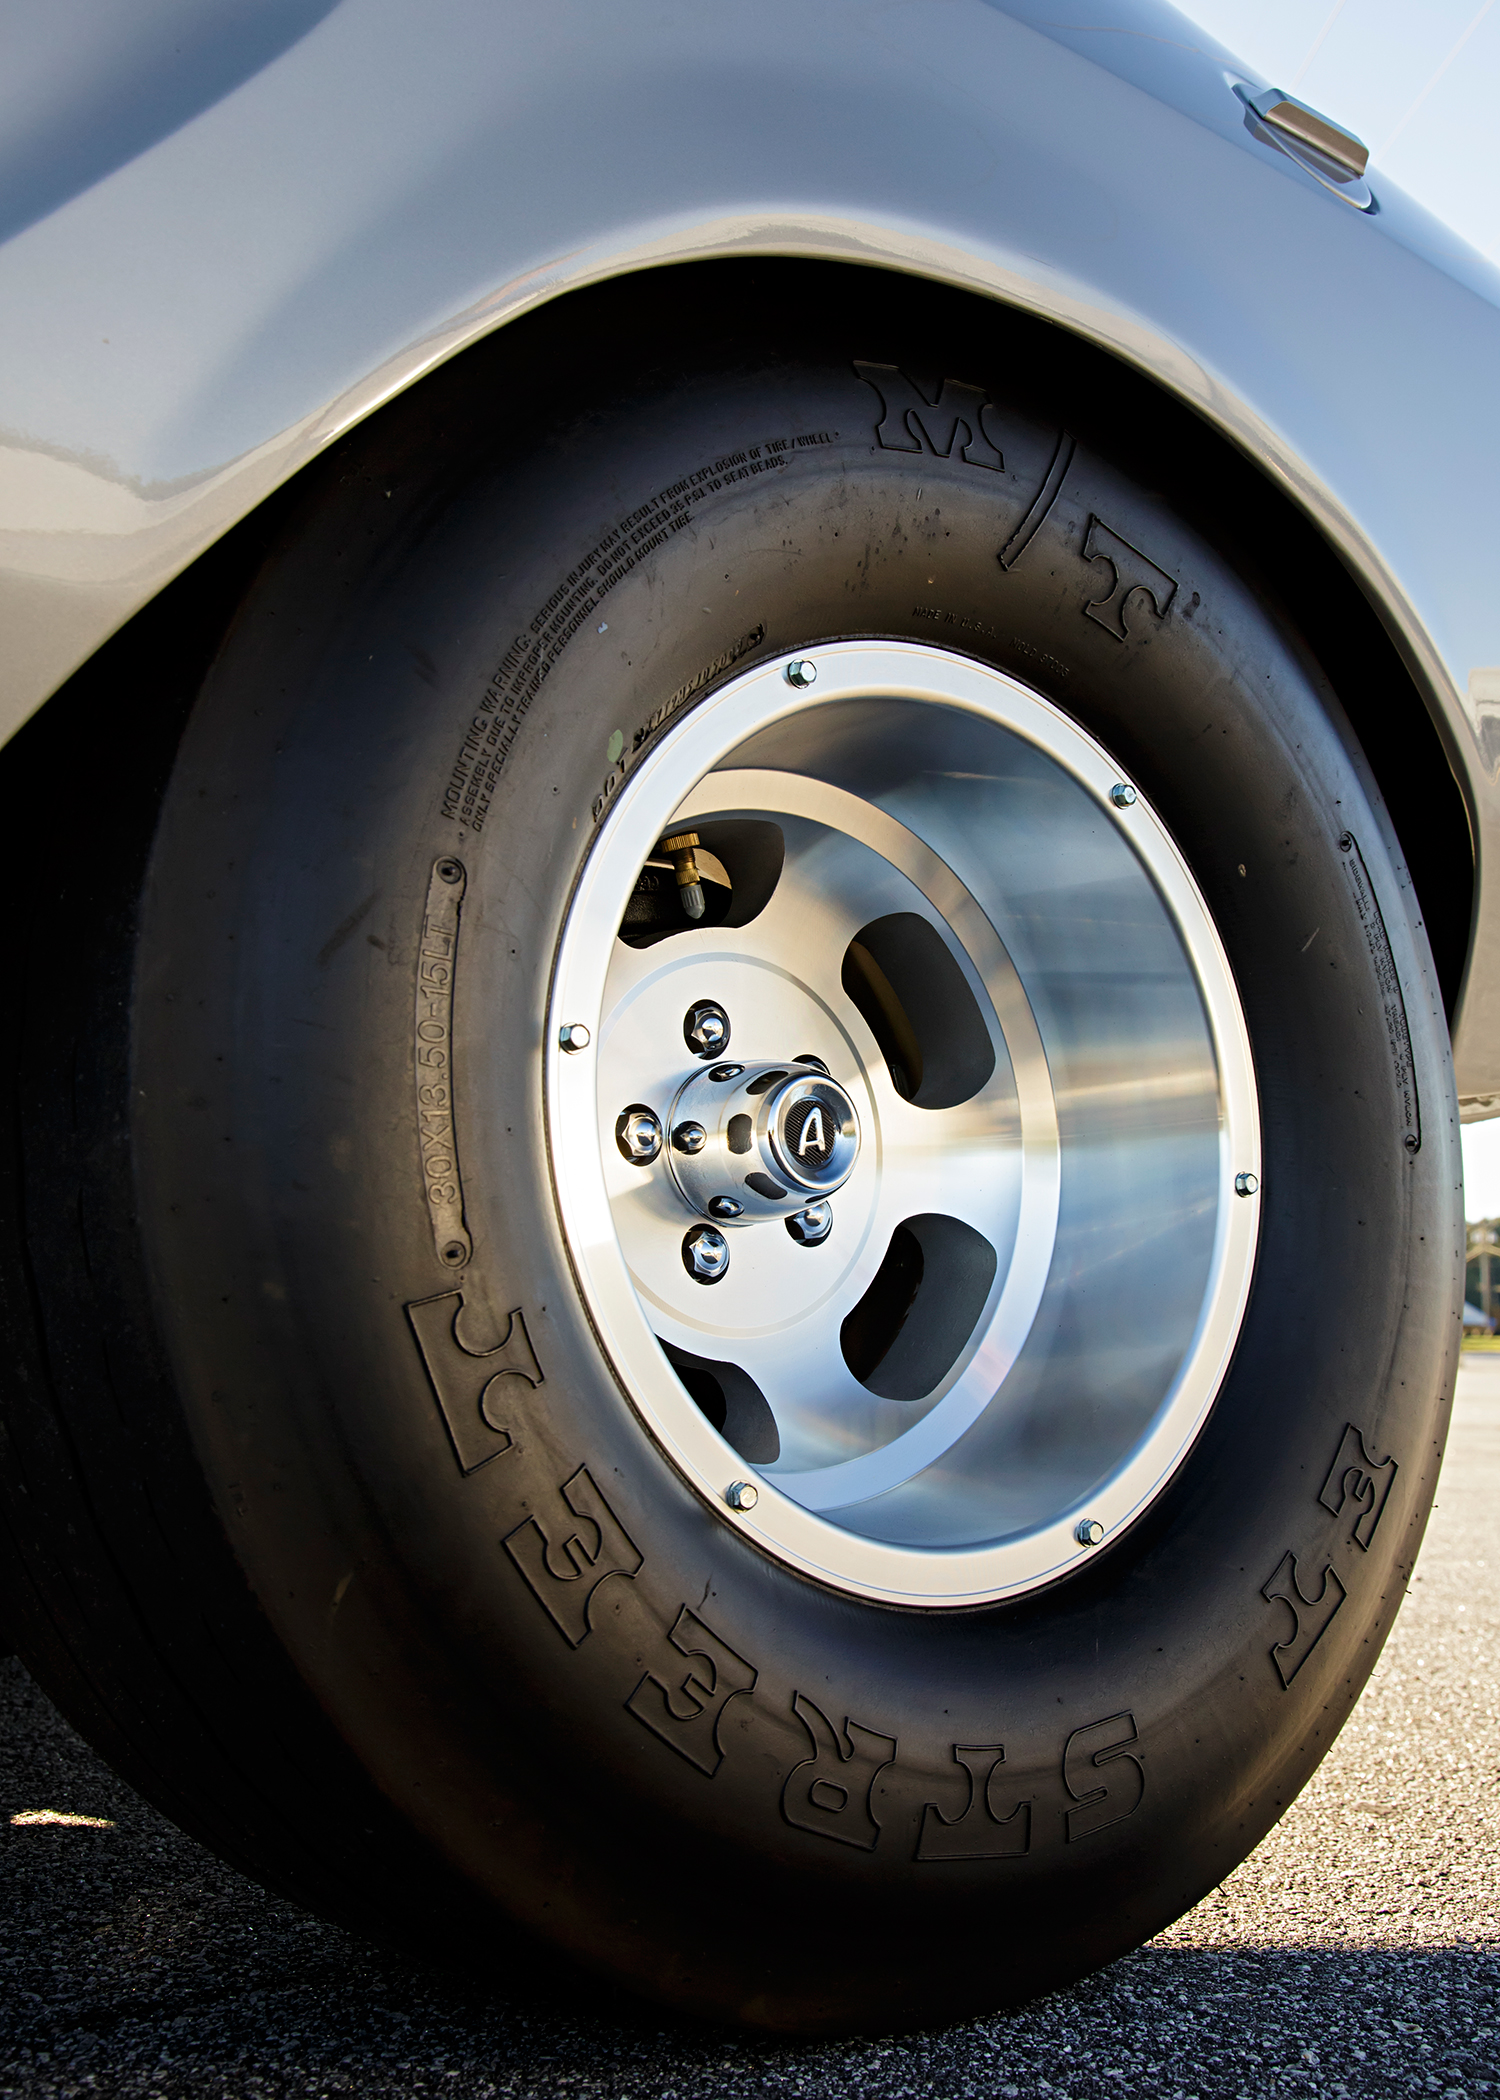 The rear slicks were originally Firestone Drag 500s in 29.5x15 size. They haven't been made for years, so the car now wears Mickey Thompson ET streets in a similar size. The wheels also had to be restored and were expertly brought back to their original machined finish. The front wheels were originally 13x6 ET slots with Goodyear D70-13 Polyglas tires. The tires are not reproduced, so Tate made the decision to install five-lug rotors and source a pair of 14x6 ET slots that would allow use of D70-14 Polyglas tires for the same look.